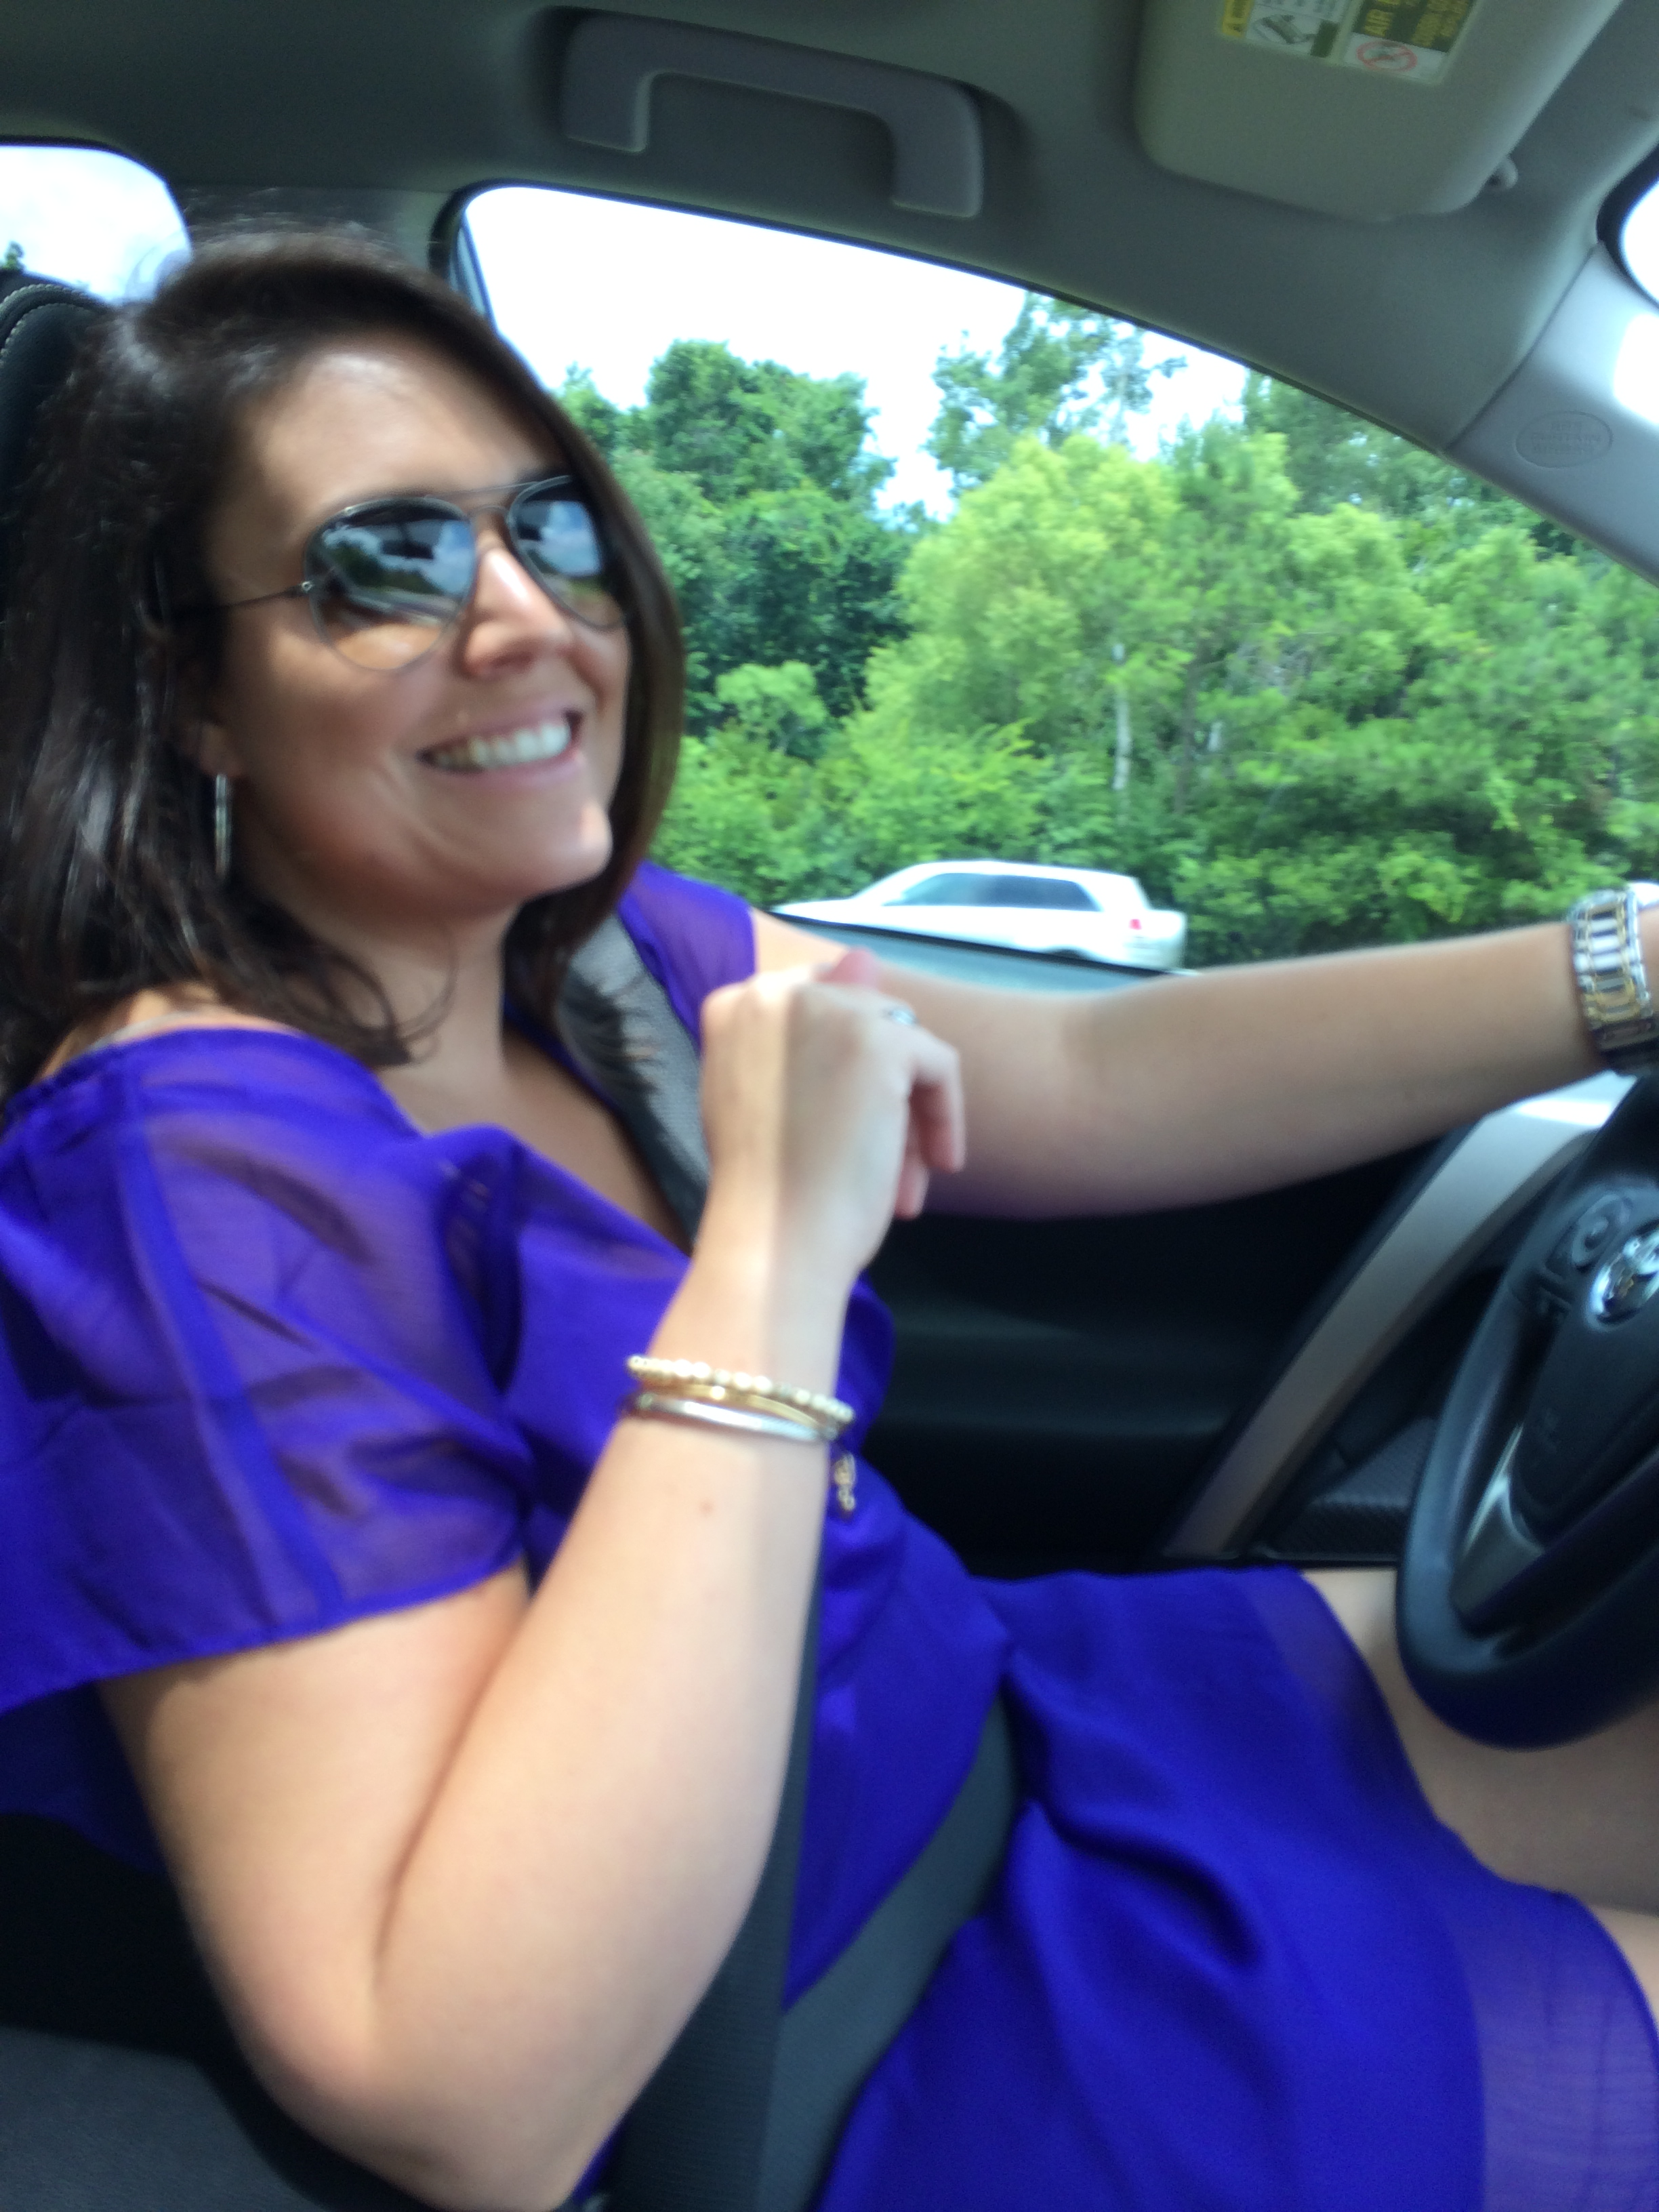 Sidney was nice enough to drive to Wilmington. We traveled high class in her brand new 2014 Toyota RAV4 XLE.